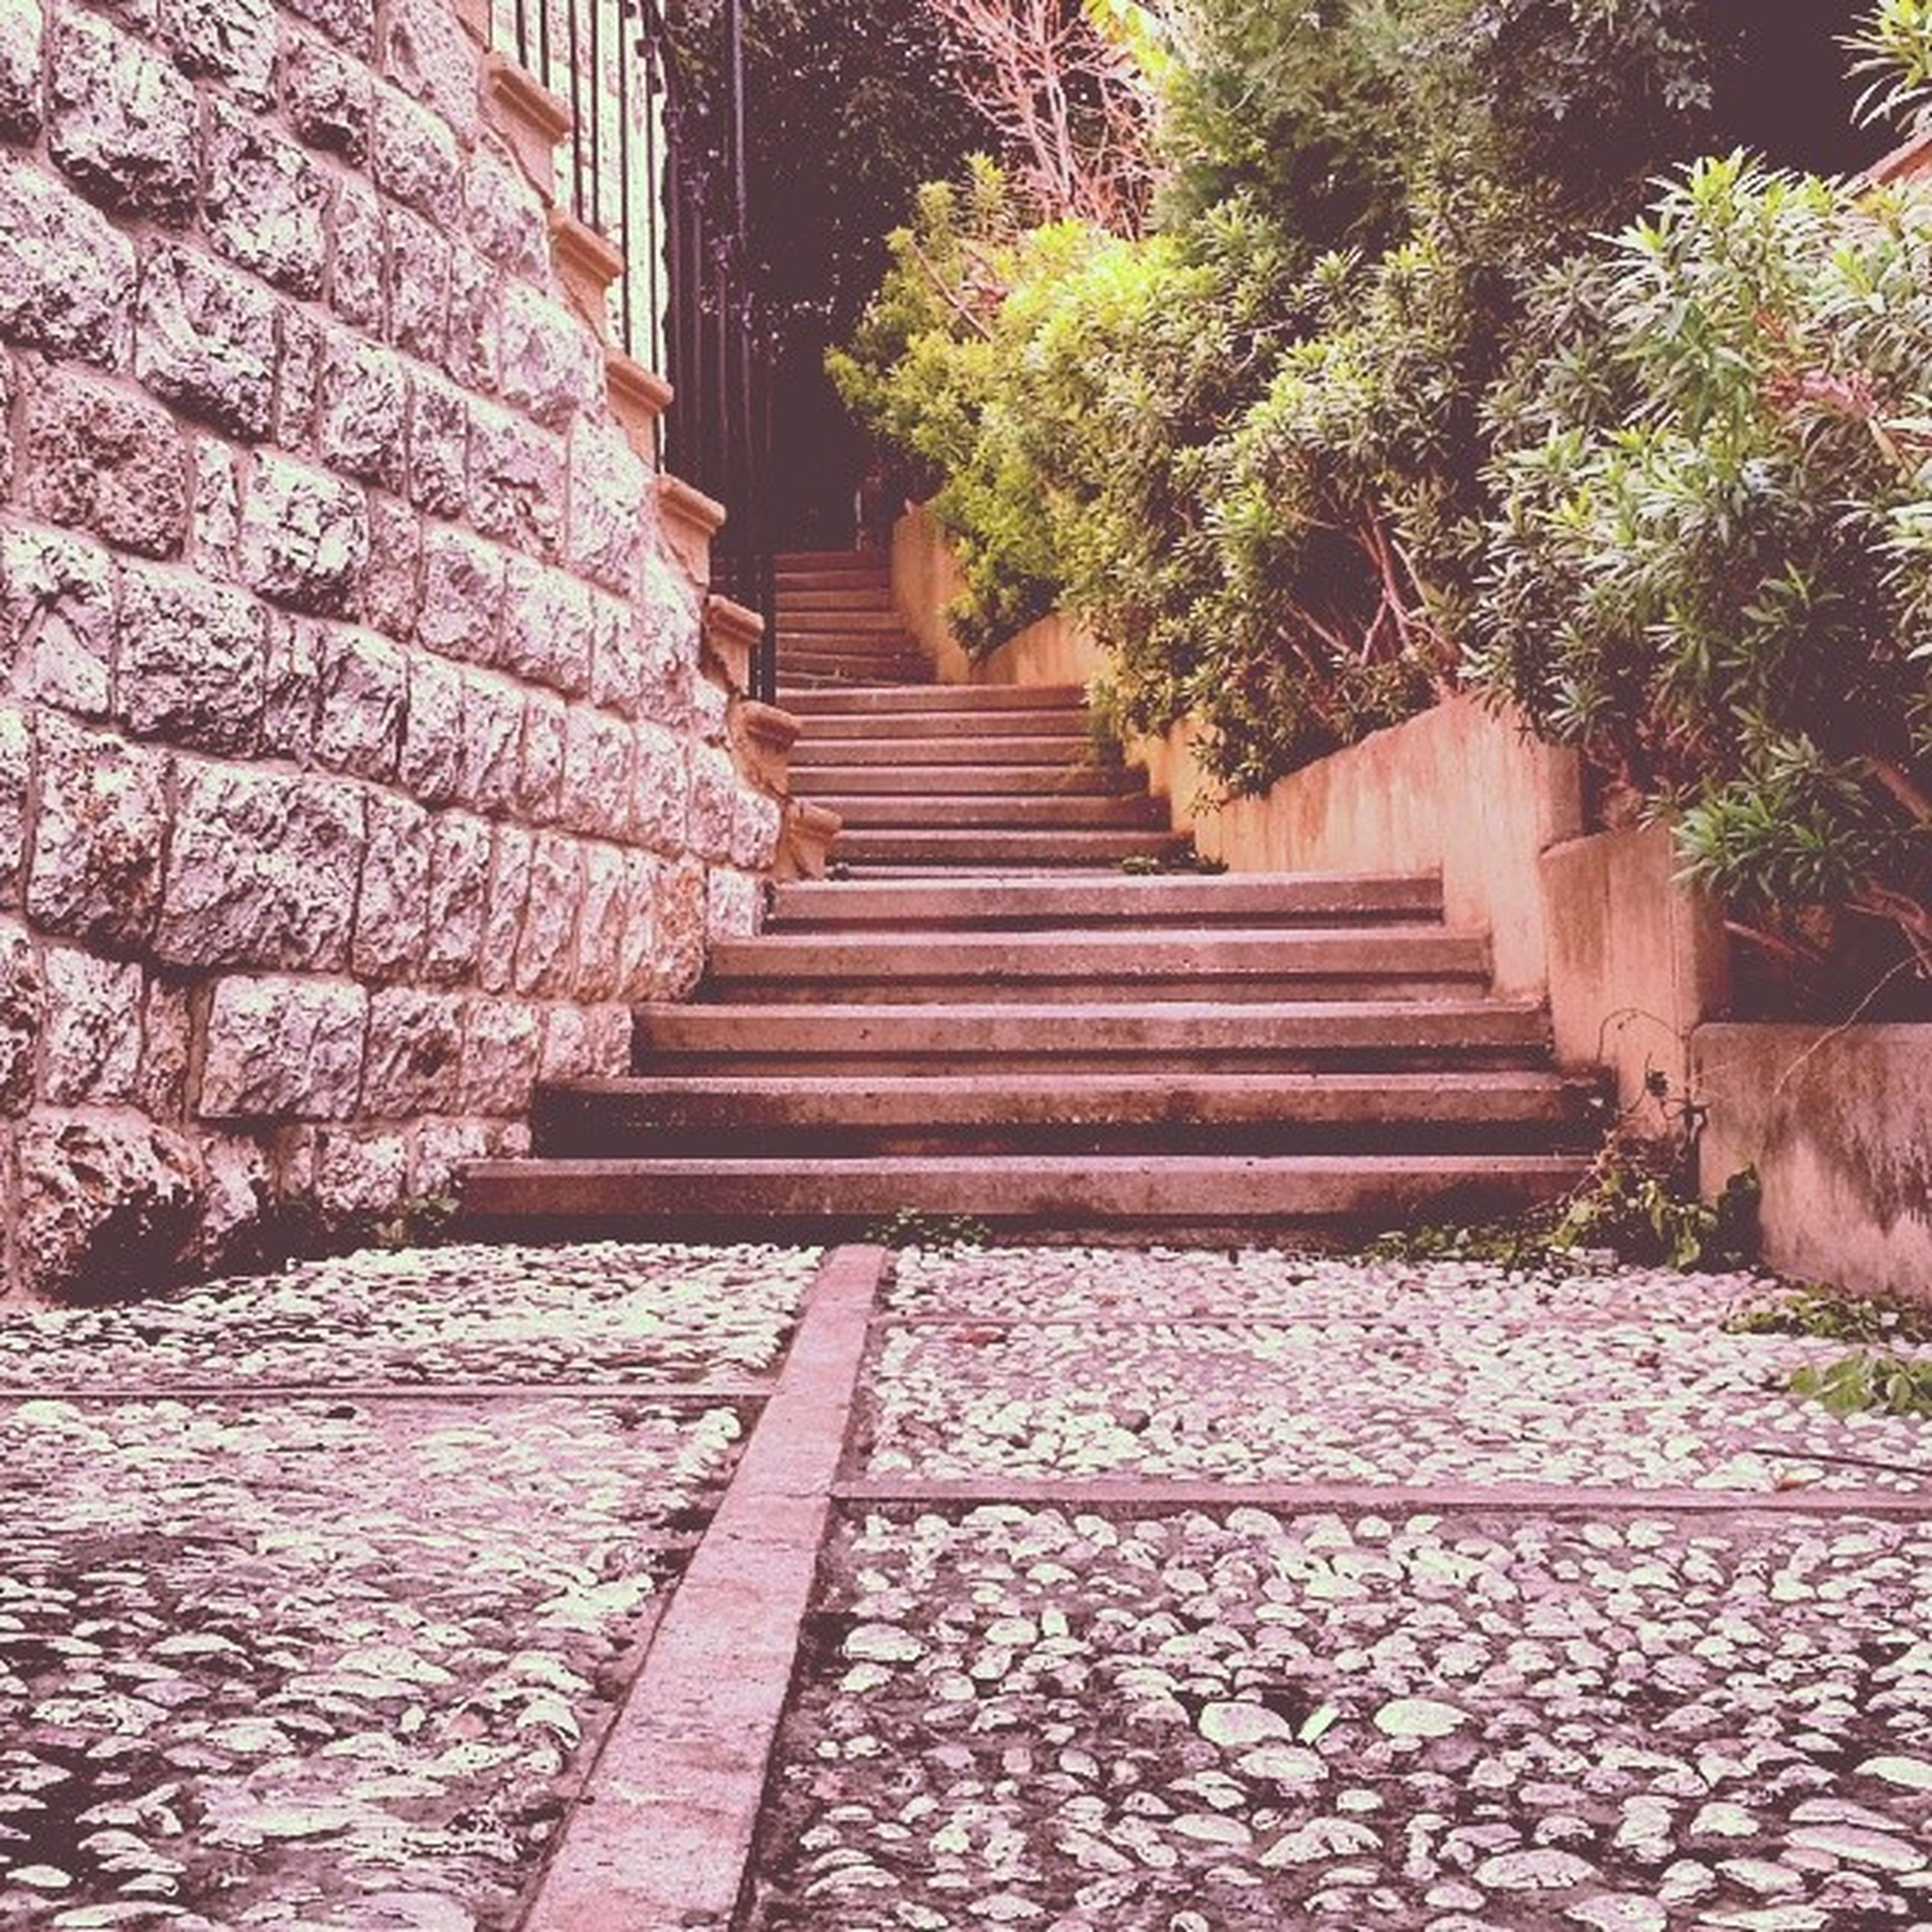 steps, steps and staircases, the way forward, staircase, built structure, architecture, plant, wall - building feature, tree, footpath, growth, walkway, stone wall, day, flower, no people, outdoors, nature, cobblestone, railing